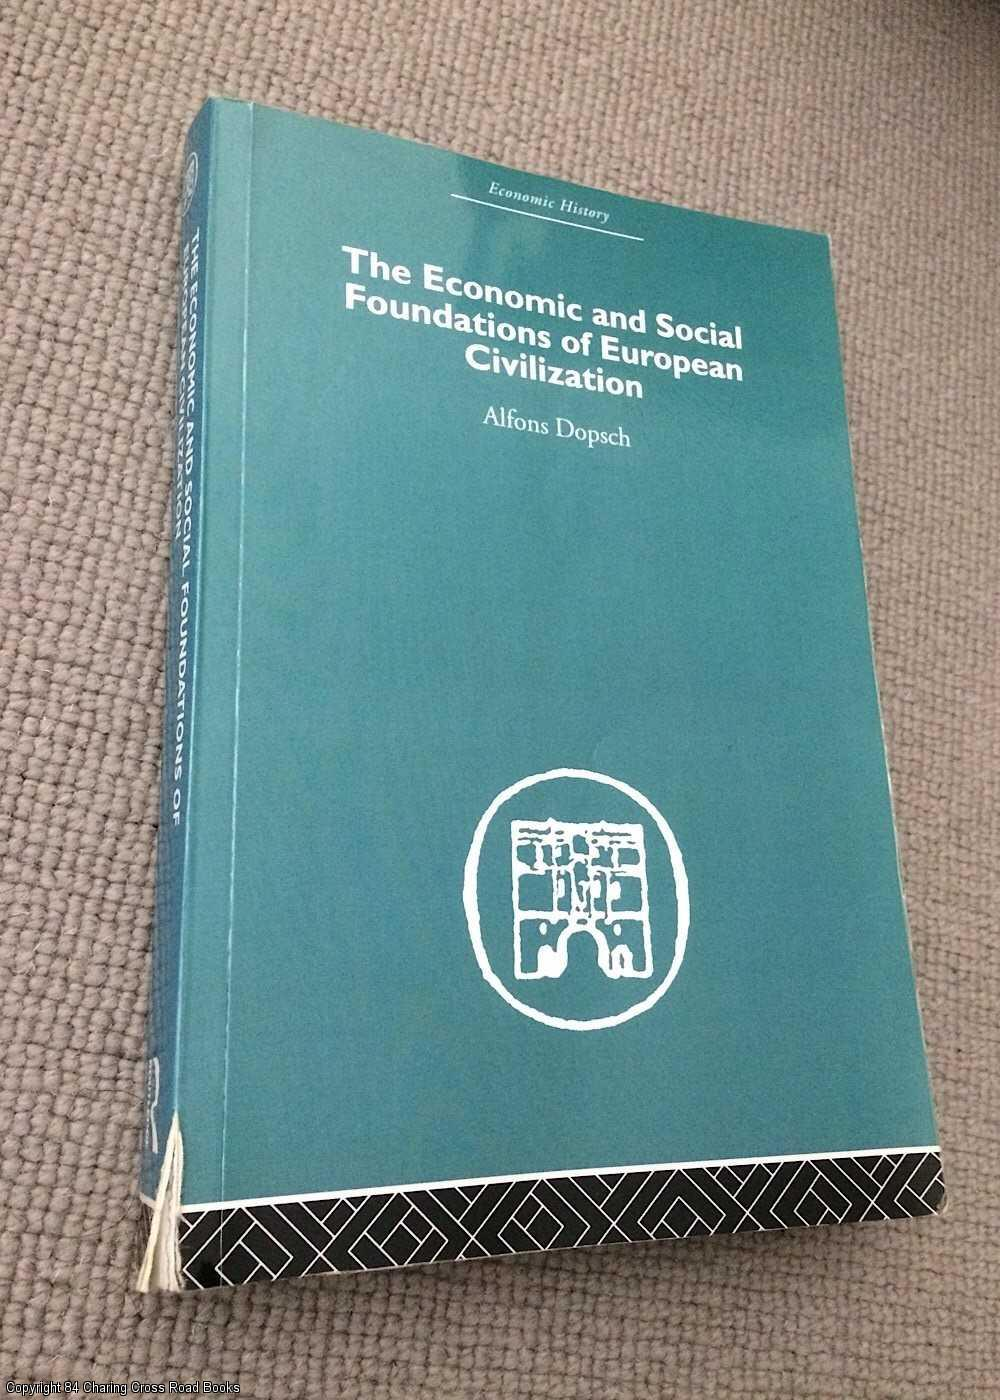 DOPSCH, ALFONS - The Economic and Social Foundations of European Civilization